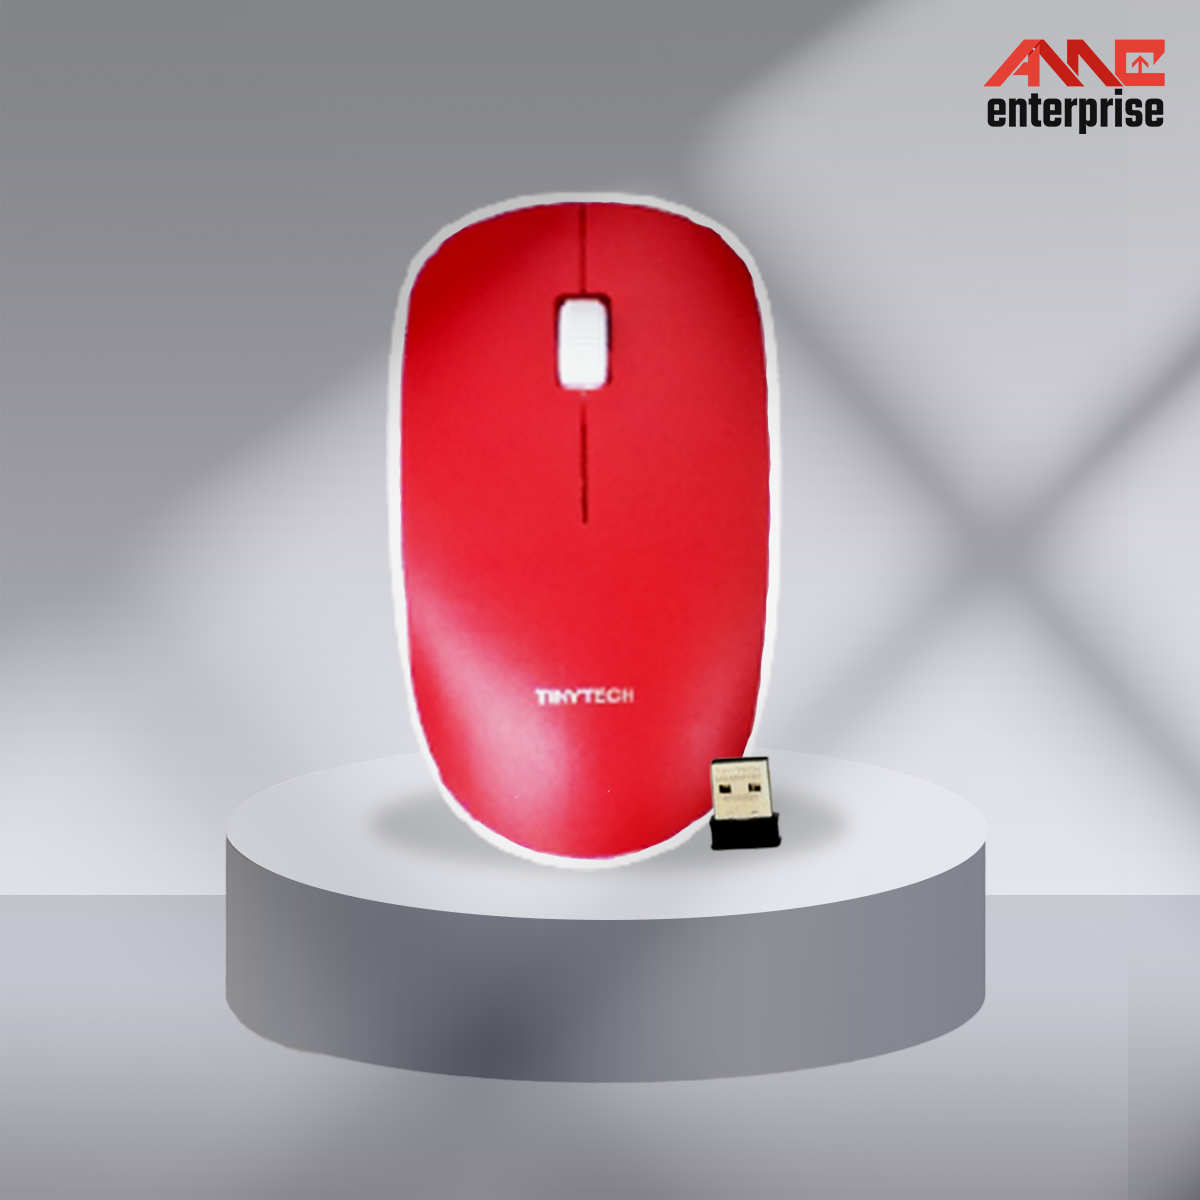 TINYTECH USB WIRELESS MOUSE MS-MN820G.png